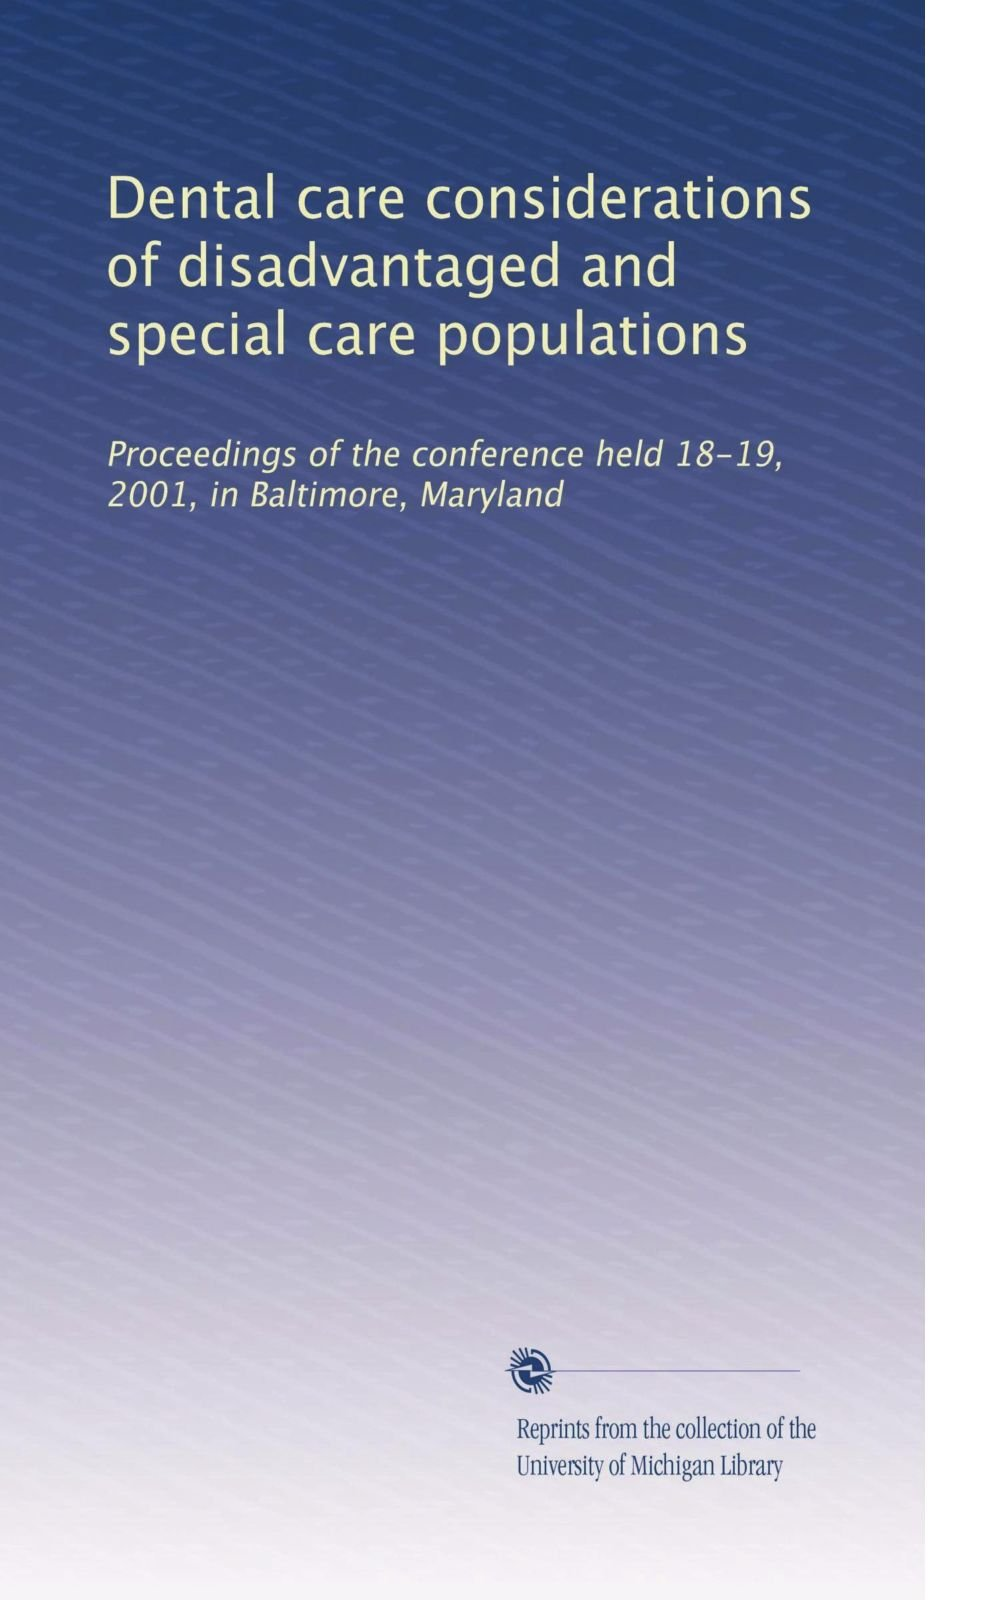 Download Dental care considerations of disadvantaged and special care populations: Proceedings of the conference held 18-19, 2001, in Baltimore, Maryland (Volume 2) pdf epub